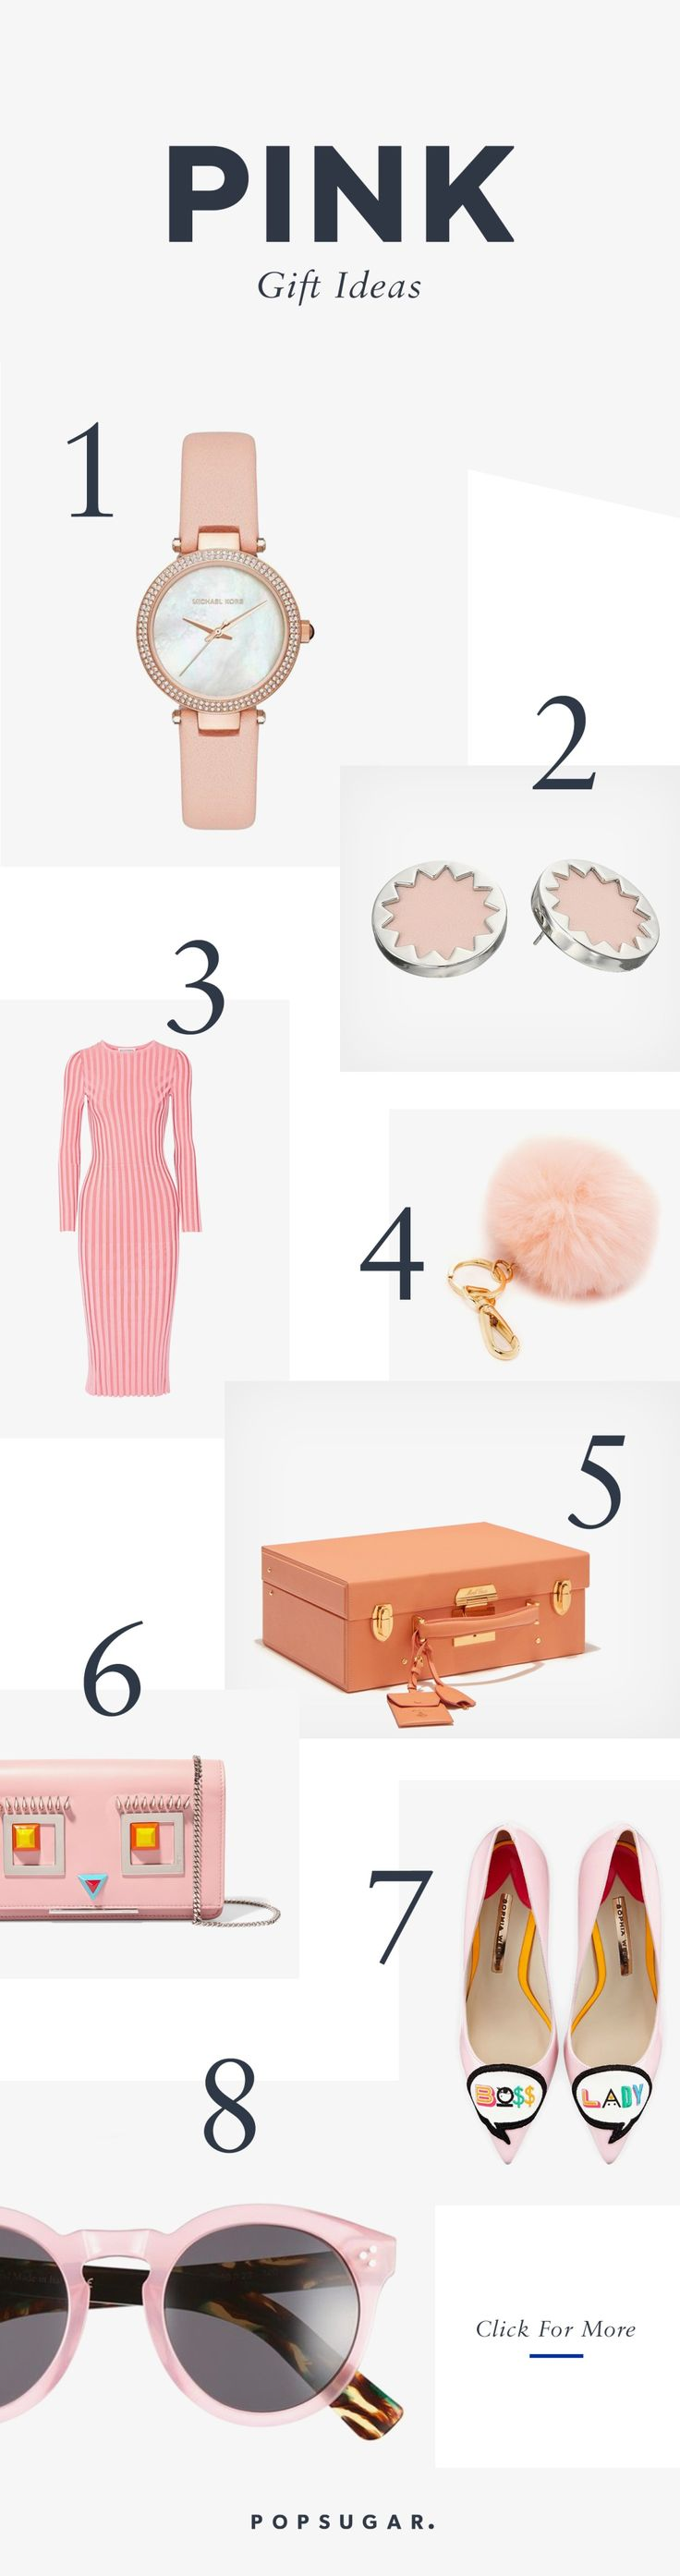 1852 best a popsugar holiday images on pinterest beauty ideas your inner girlie girl will flip for these pink gifts arubaitofo Gallery